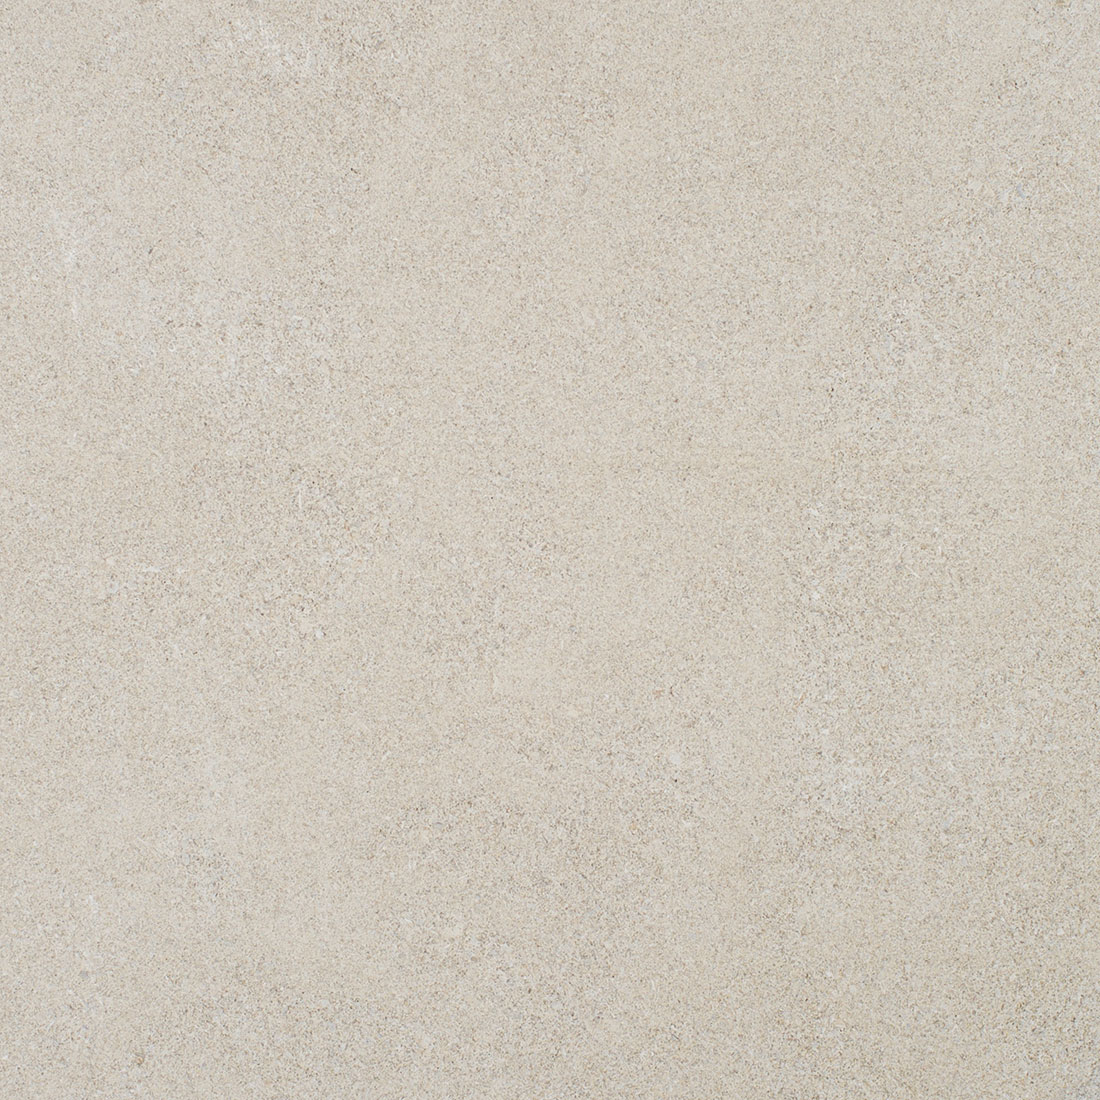 Indiana Limestone Standard Buff Outdoor Kitchen Countertop Swatch